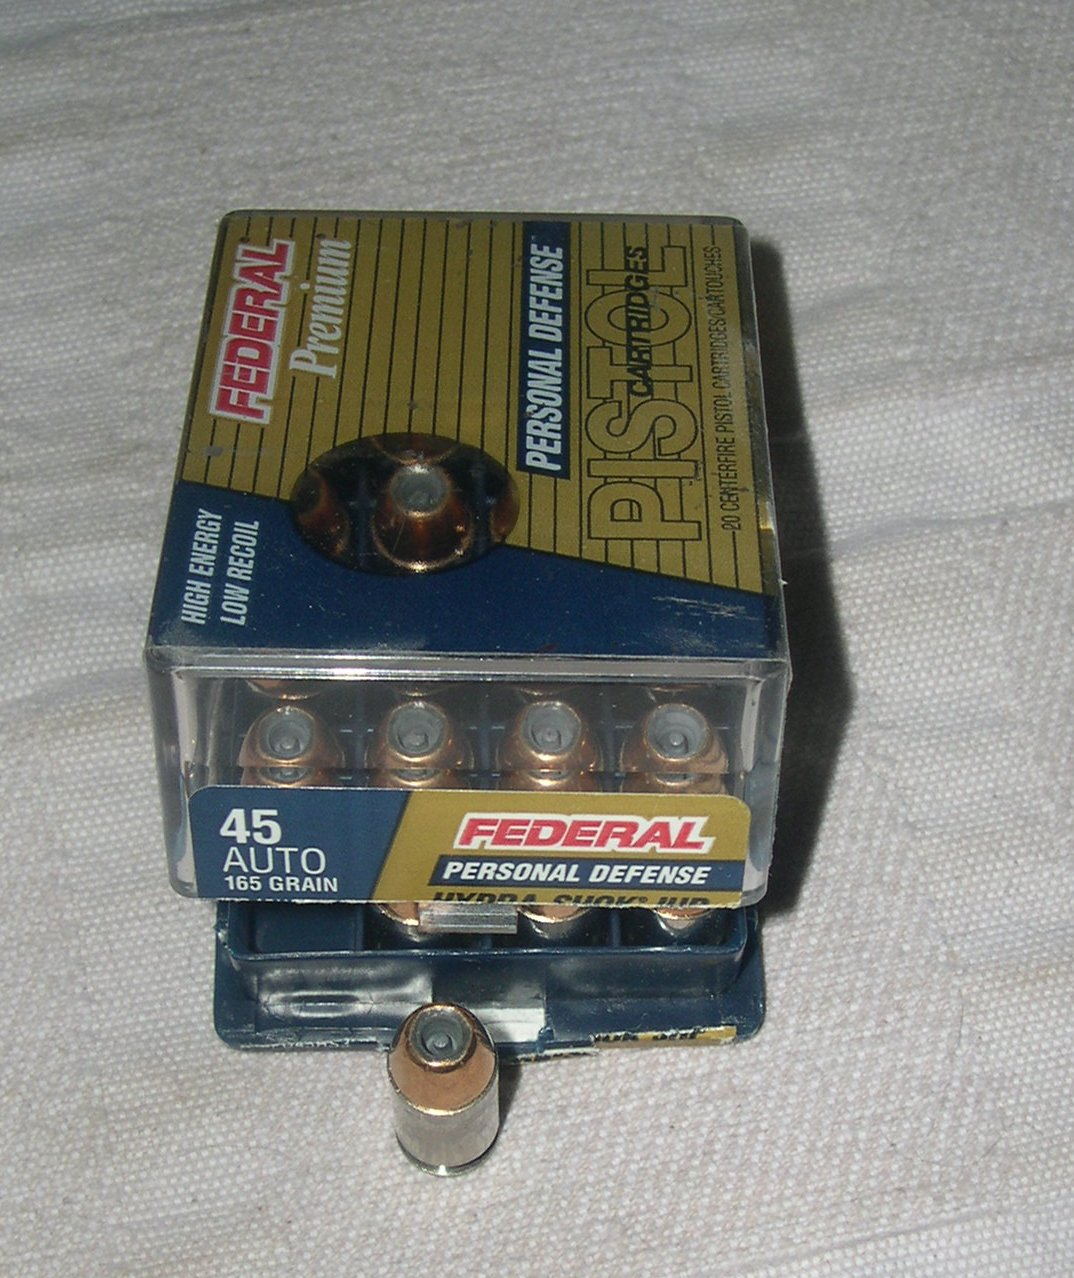 Federal Personal Defense Ammo - Your opinions please-fed-pd-165-gr.jpg